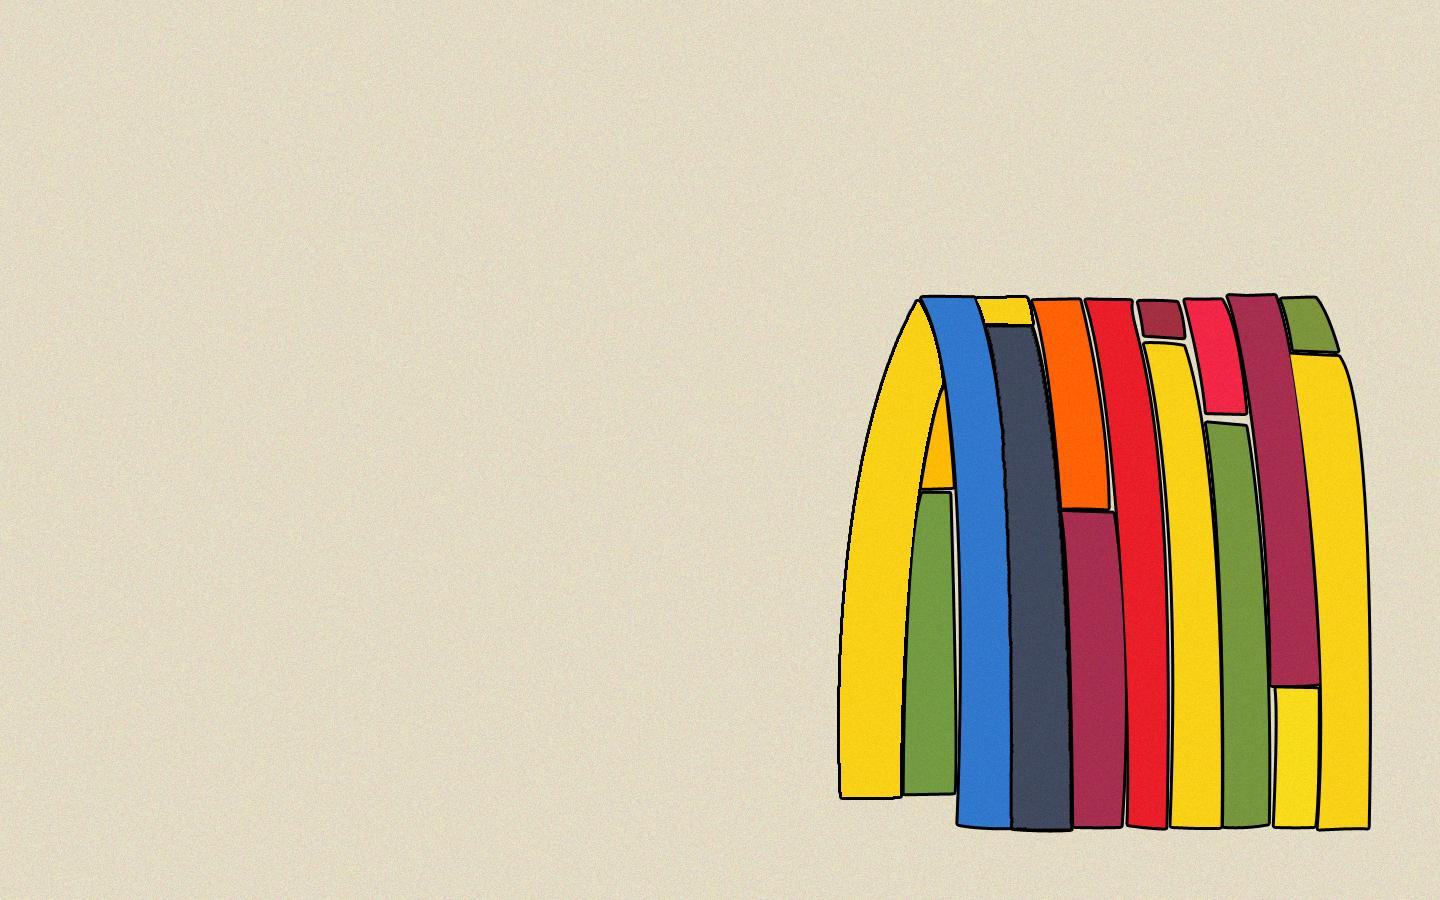 Yellow Submarine wallpaper [1440x900] Wallpapers Wallpapers 1440x900